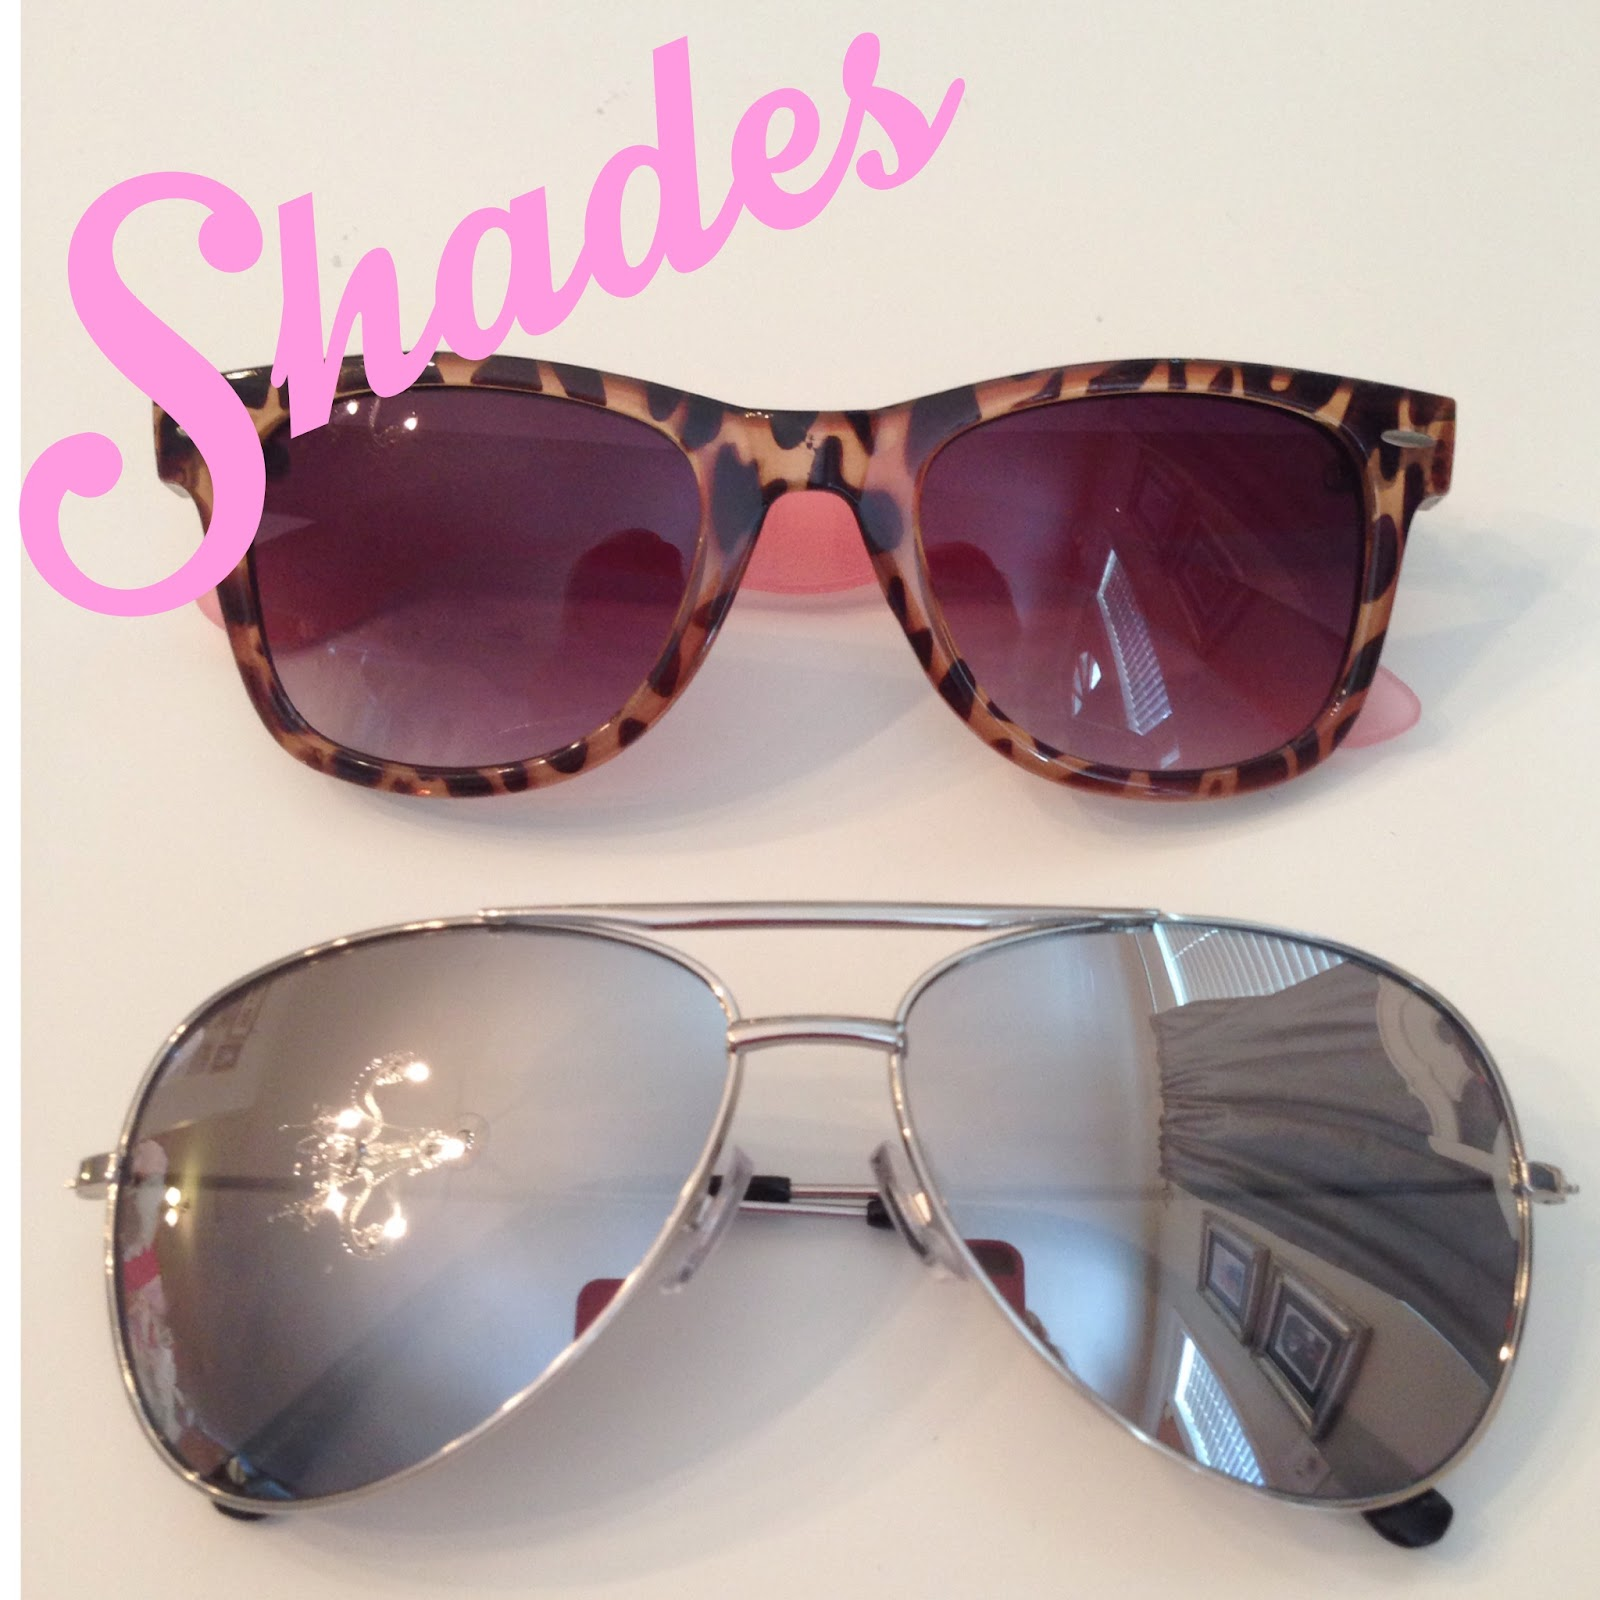 http://www.forever21.com/Product/Product.aspx?br=f21&category=acc_glasses&productid=1000064374&SizeChart=